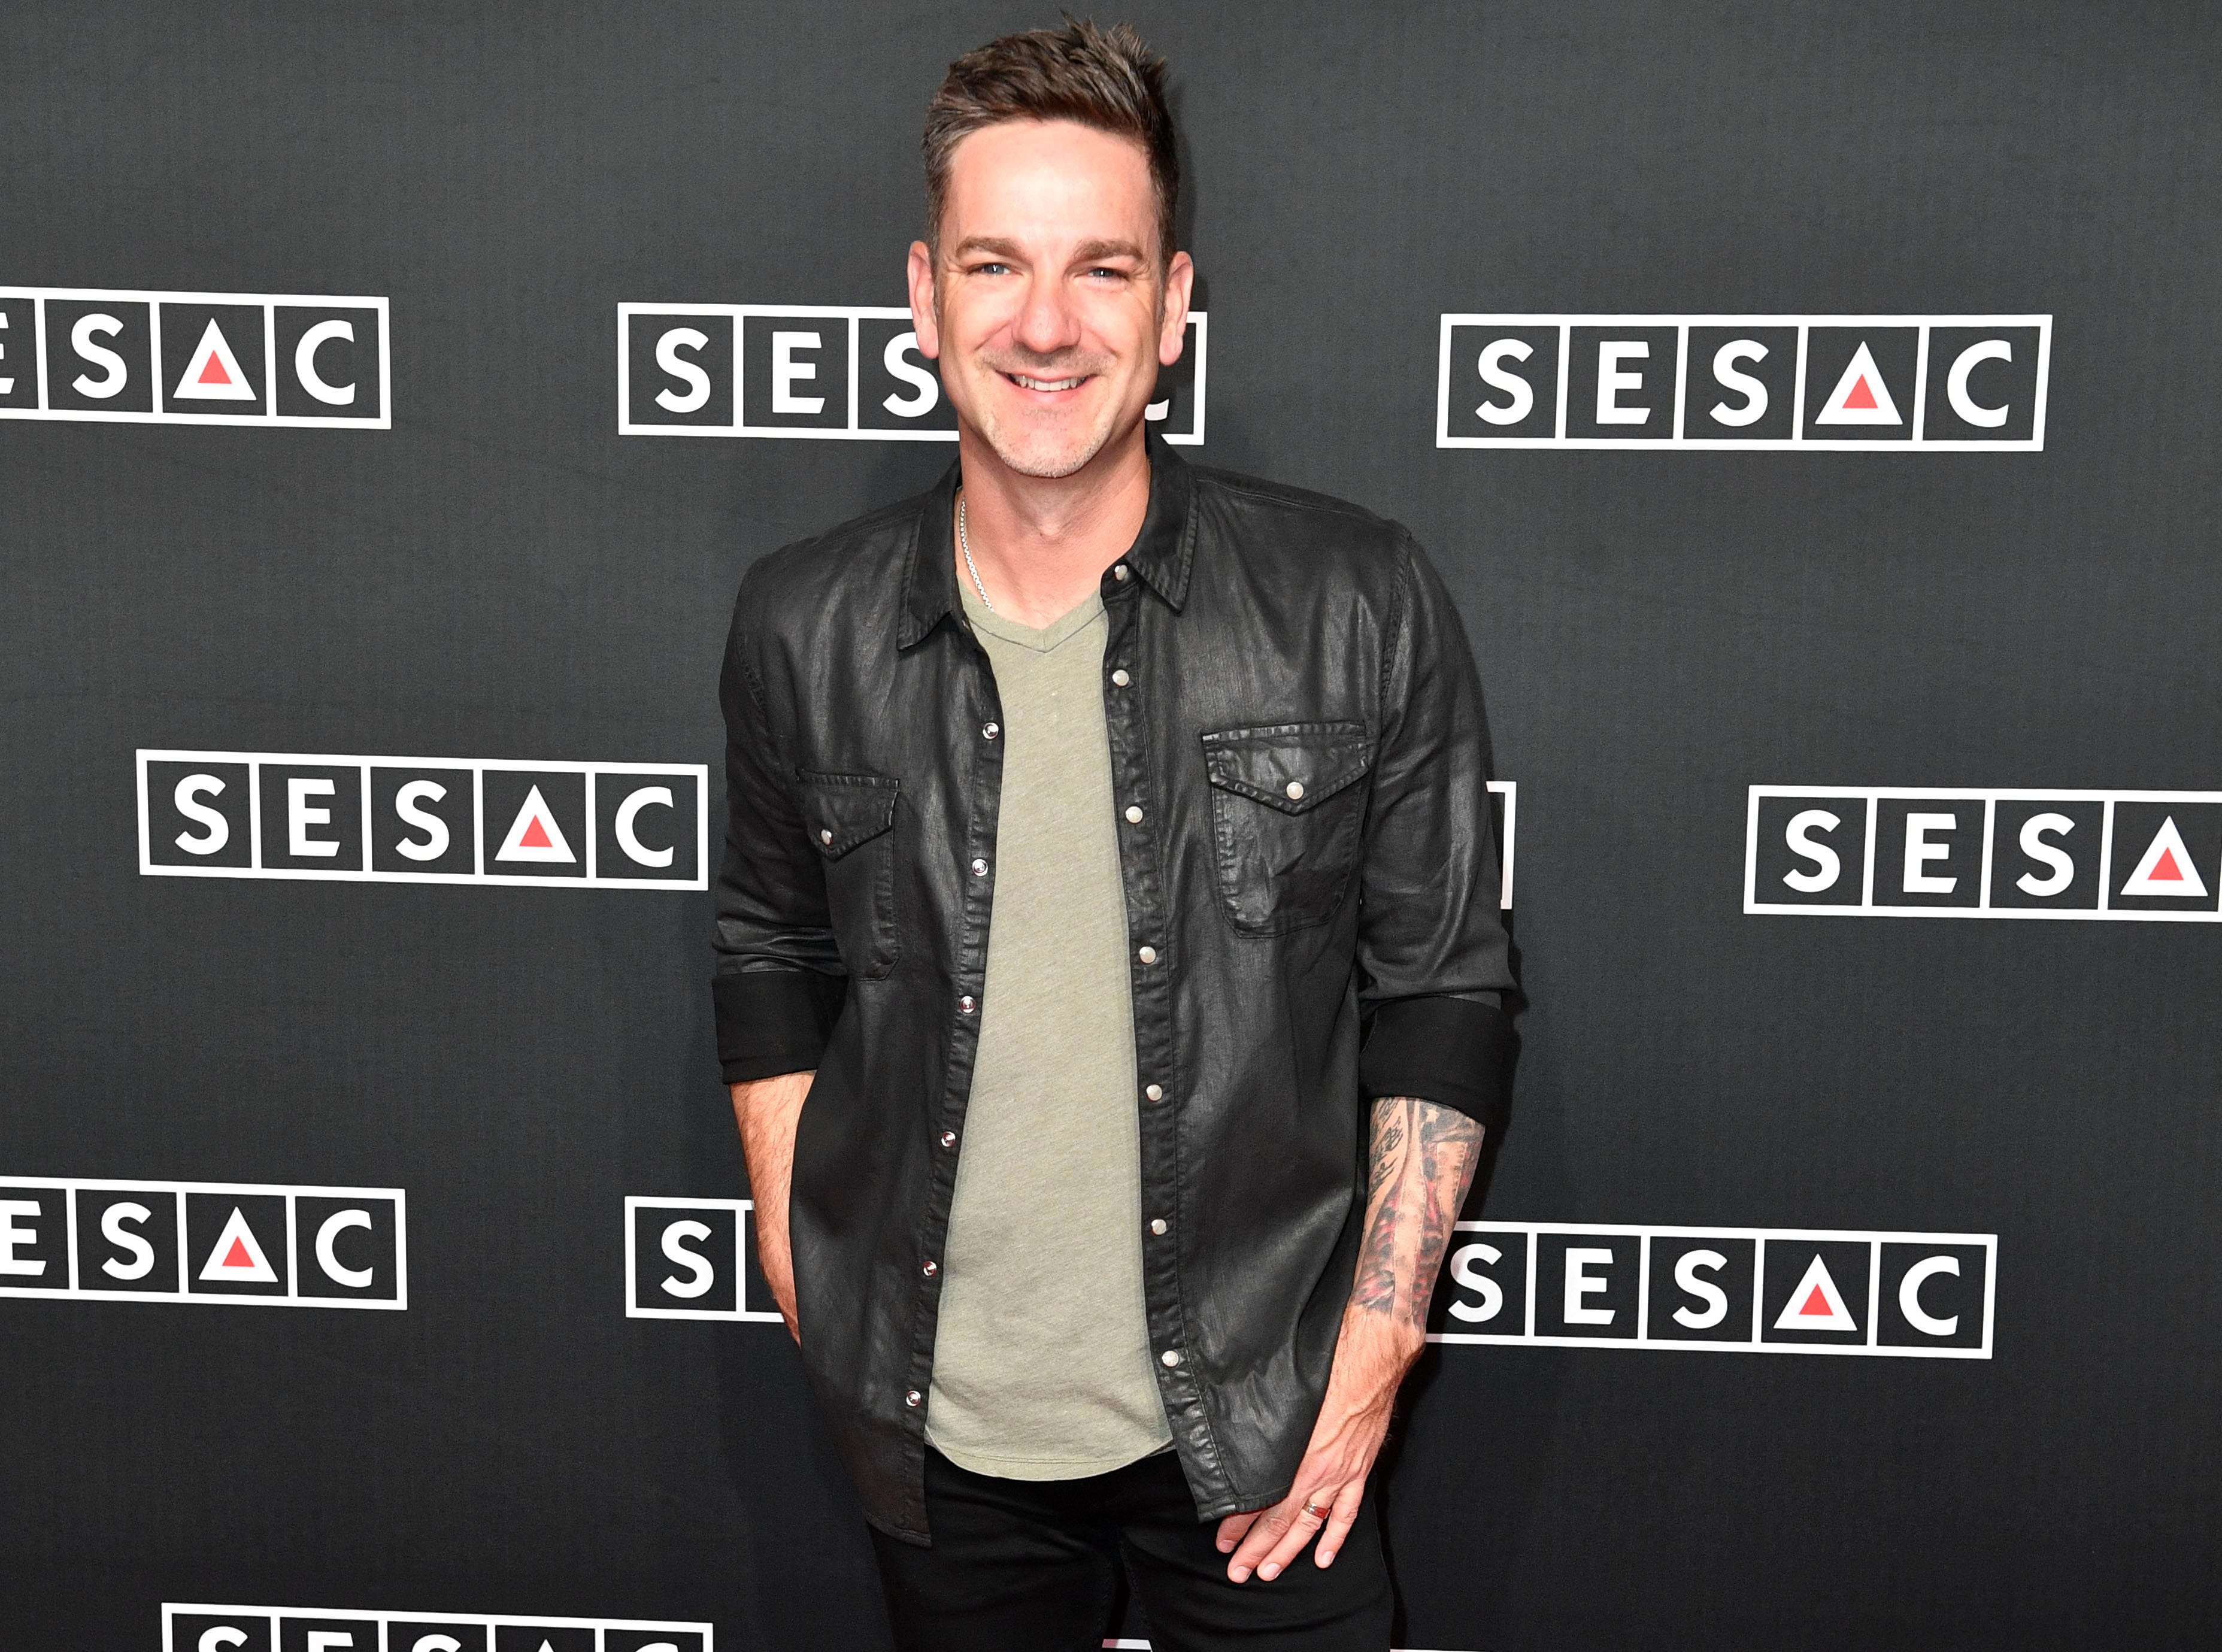 Craig Campbell on the red carpet at the SESAC Nashville Music Awards at the Country Music Hall of Fame and Museum Sunday Nov. 11, 2018, in Nashville, Tenn.